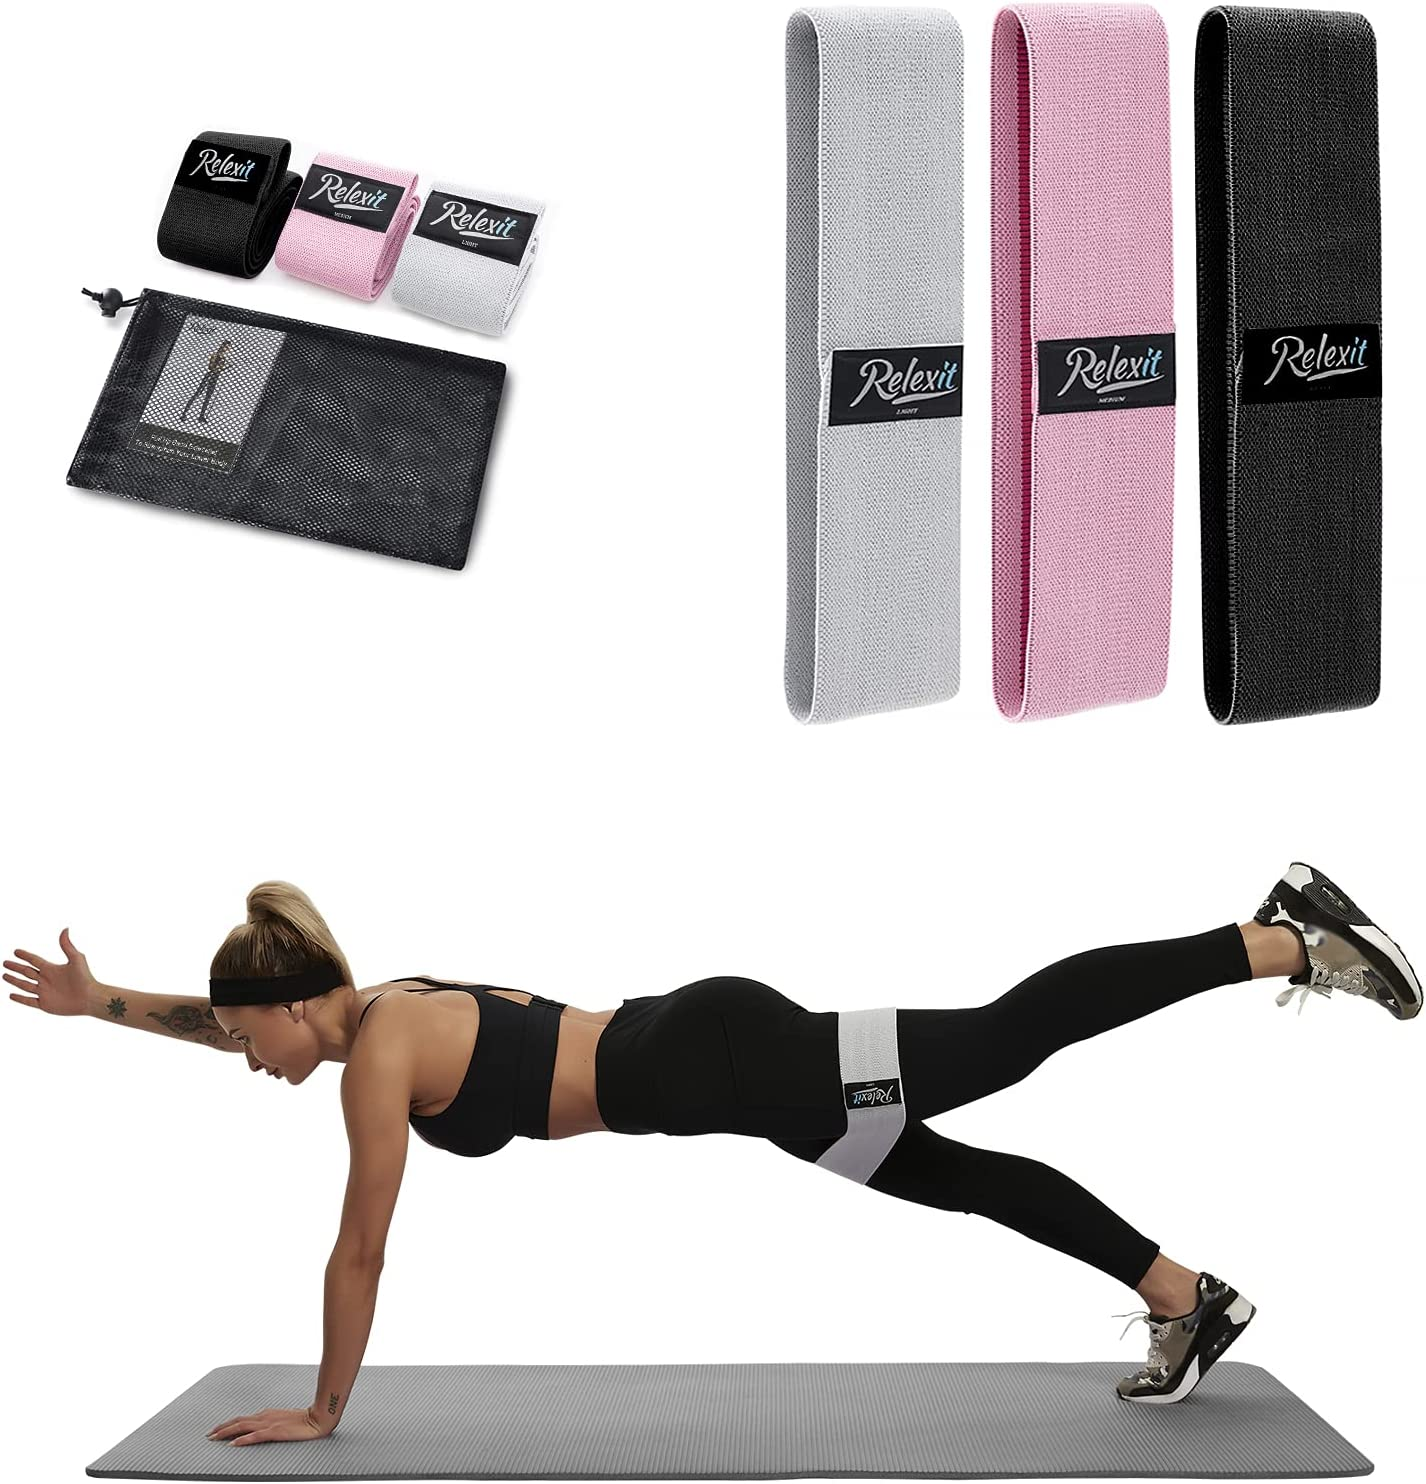 RELEXIT Fabric Elegant Resistance Bands Set for Legs Long Beach Mall and Butt Ho Pack 3